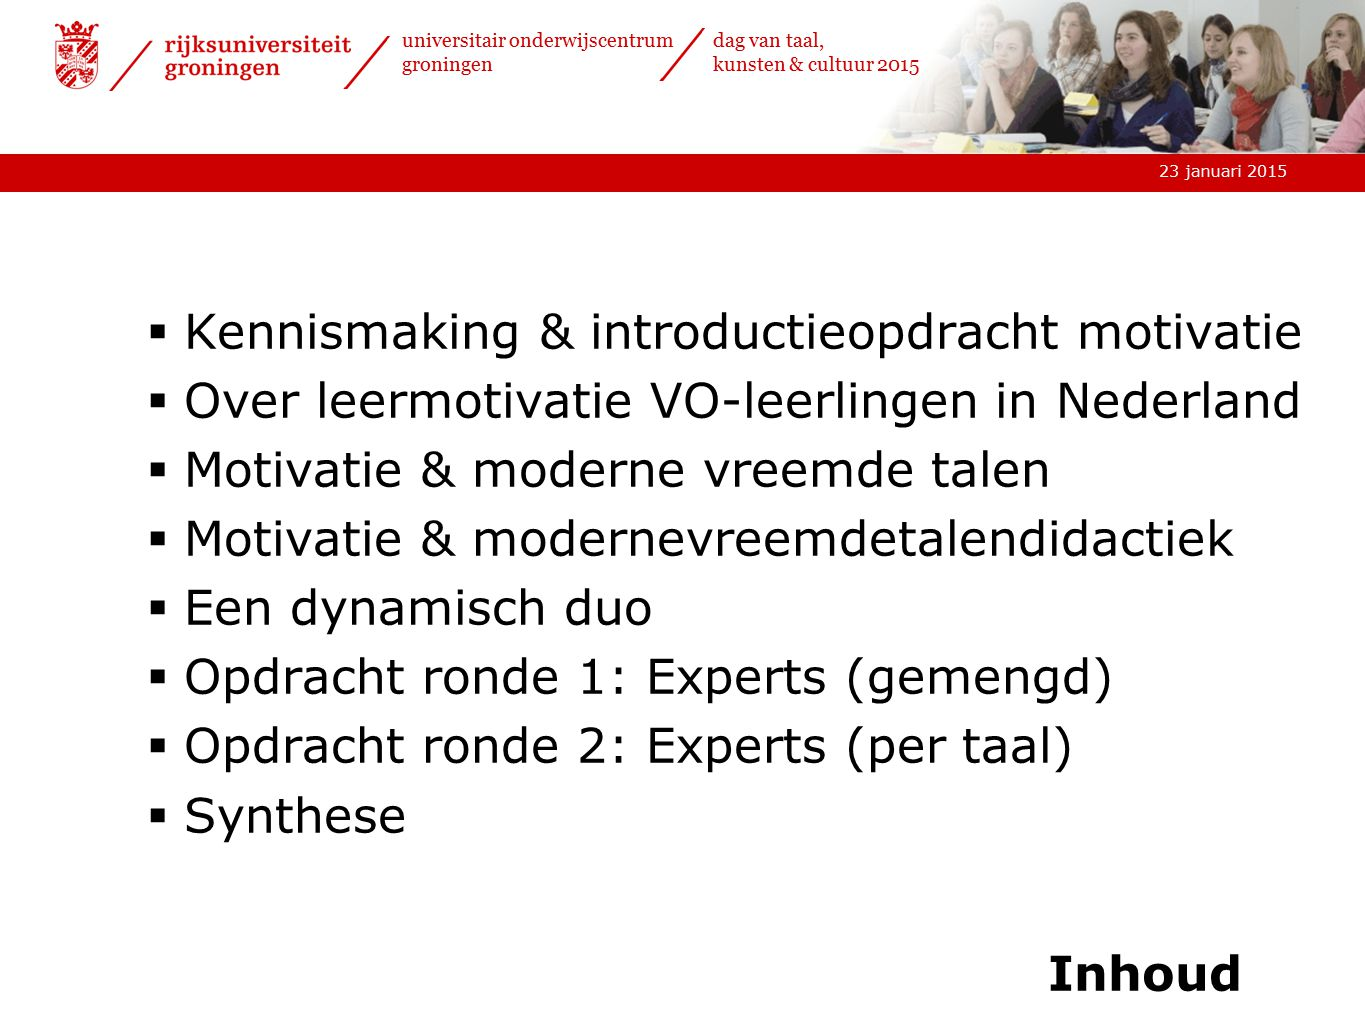 Kennismaking & introductieopdracht motivatie